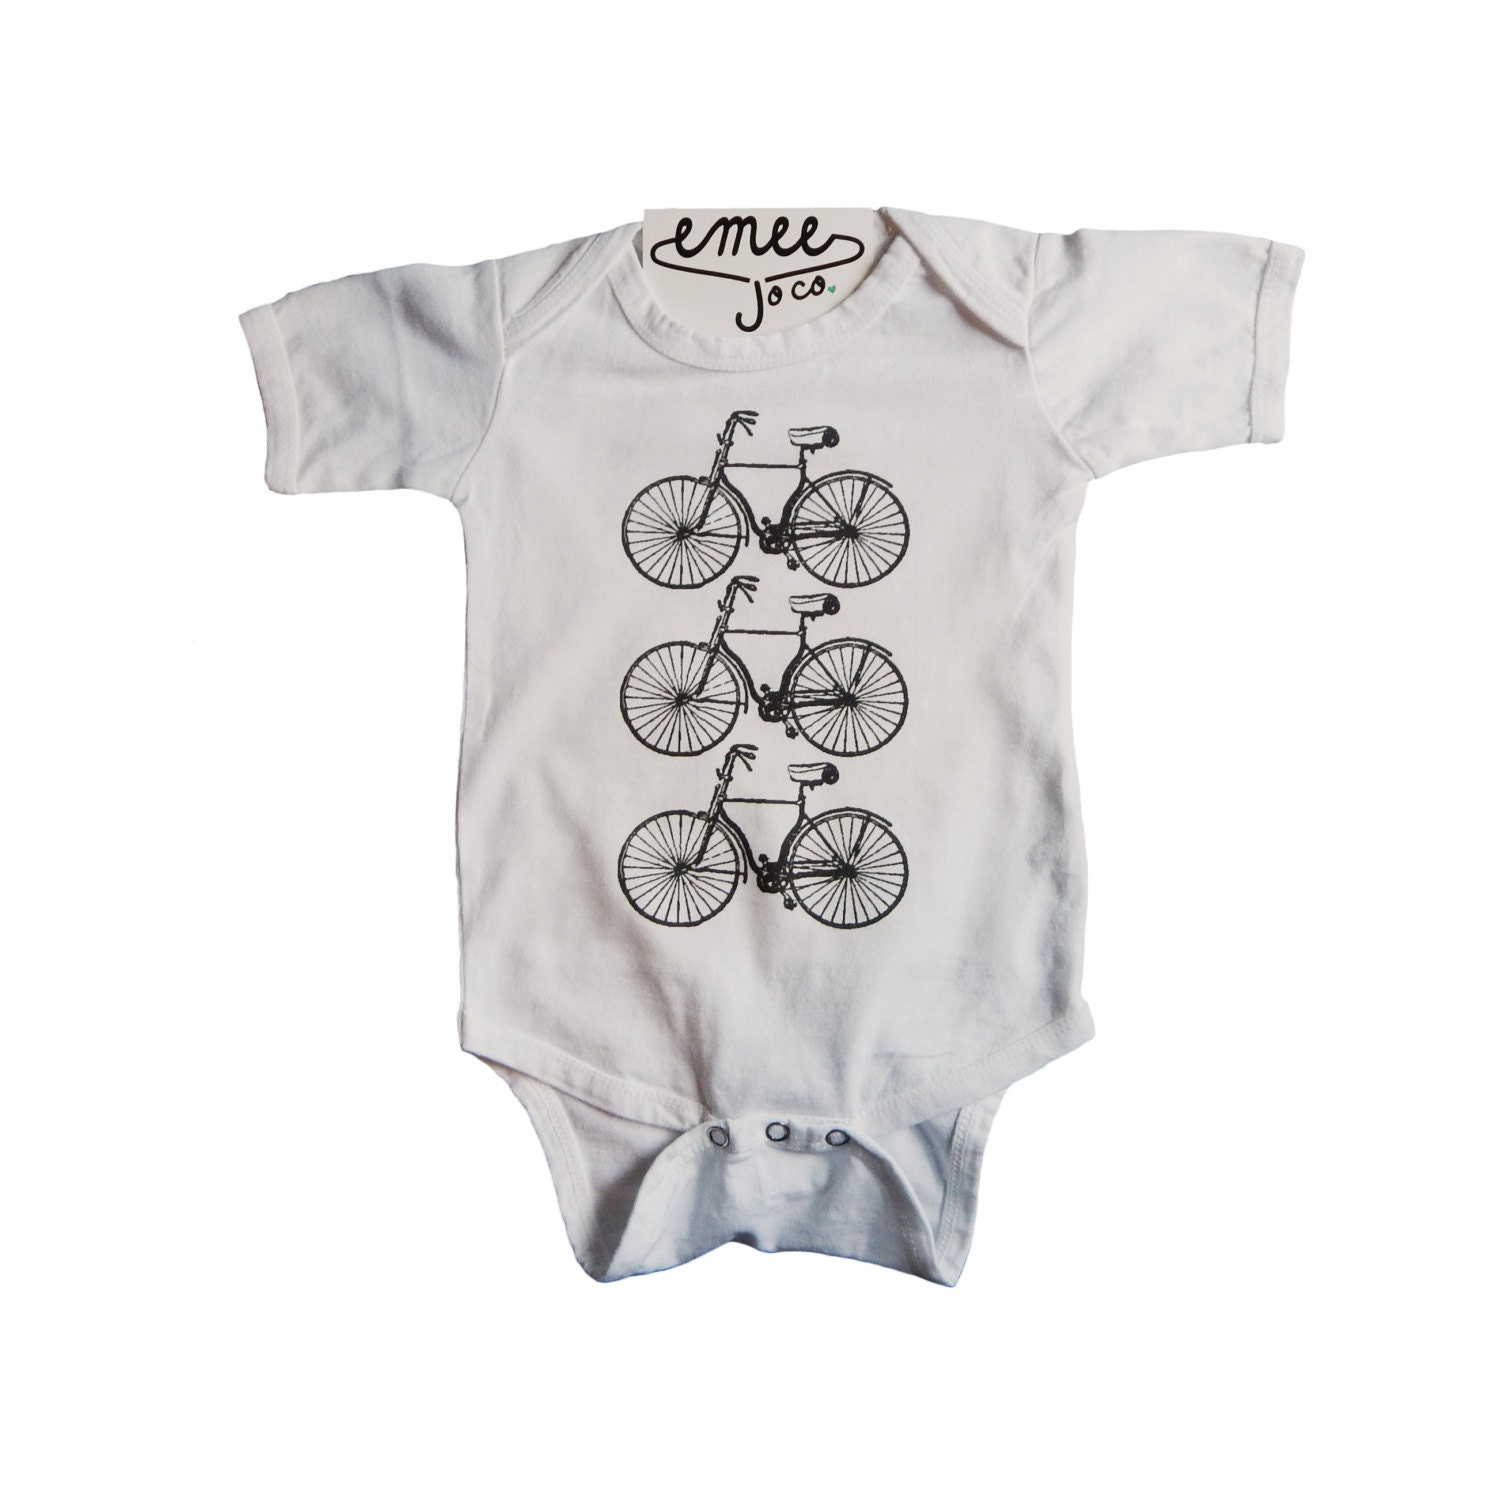 c41d5a688 Hipster Baby Clothes Hipster Baby Boy Clothes Hipster Baby